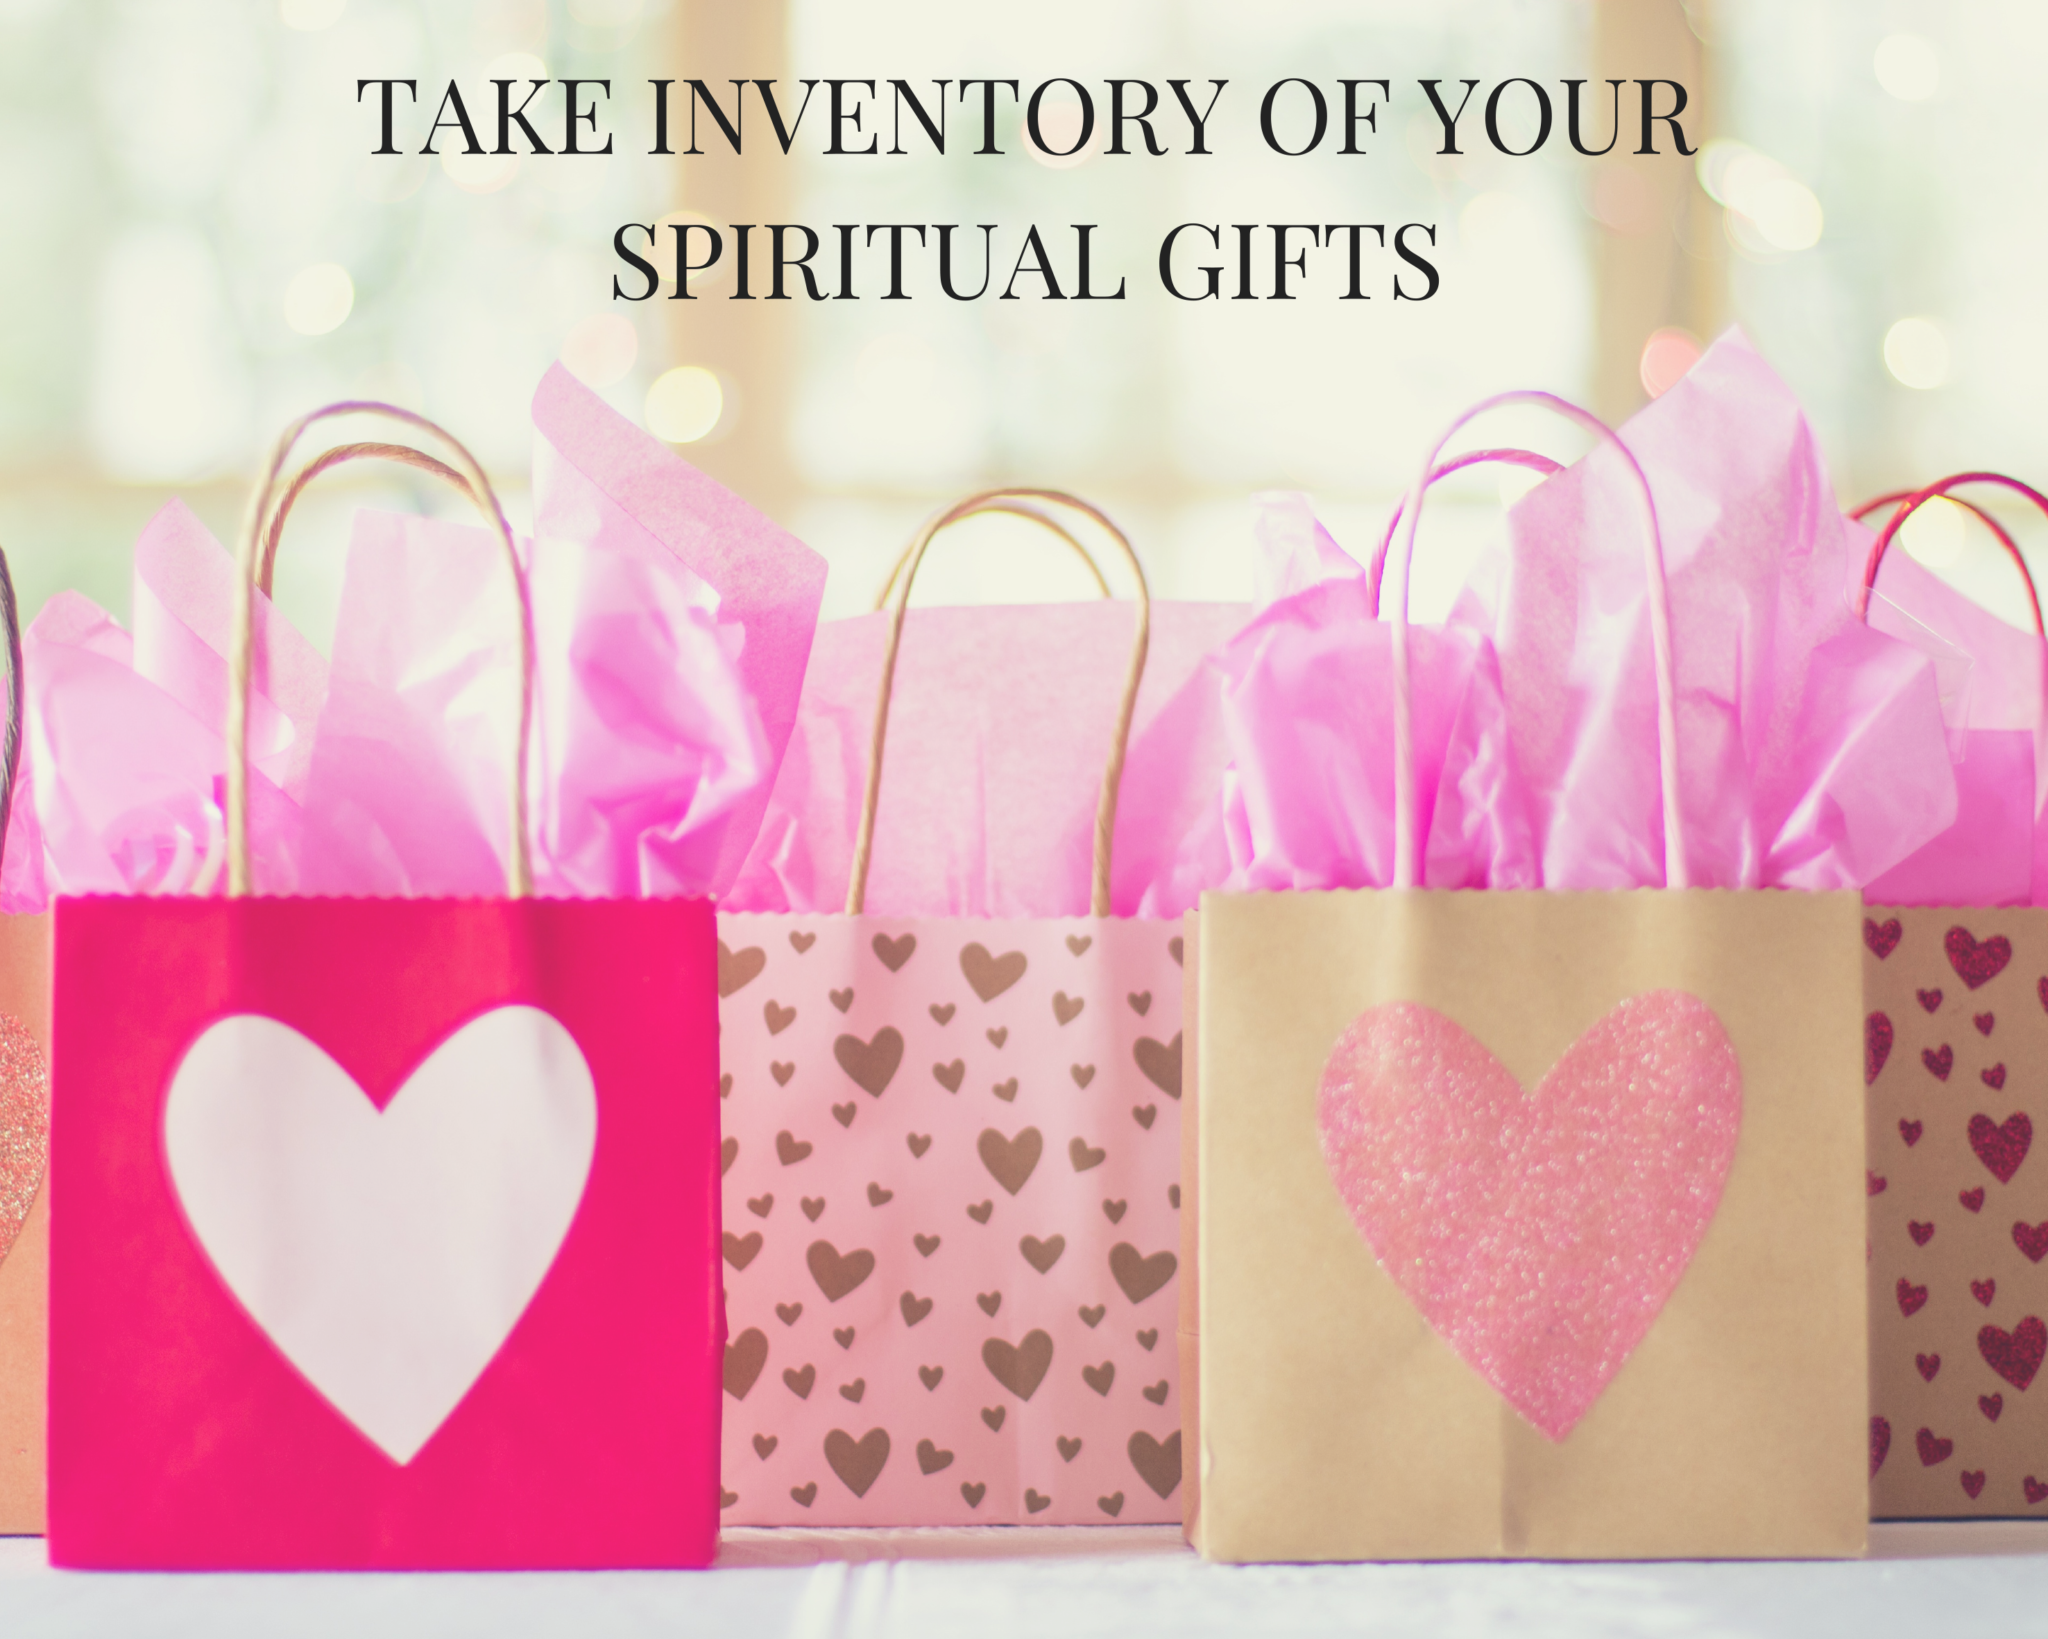 Spiritual gifts - God's Transforming Grace